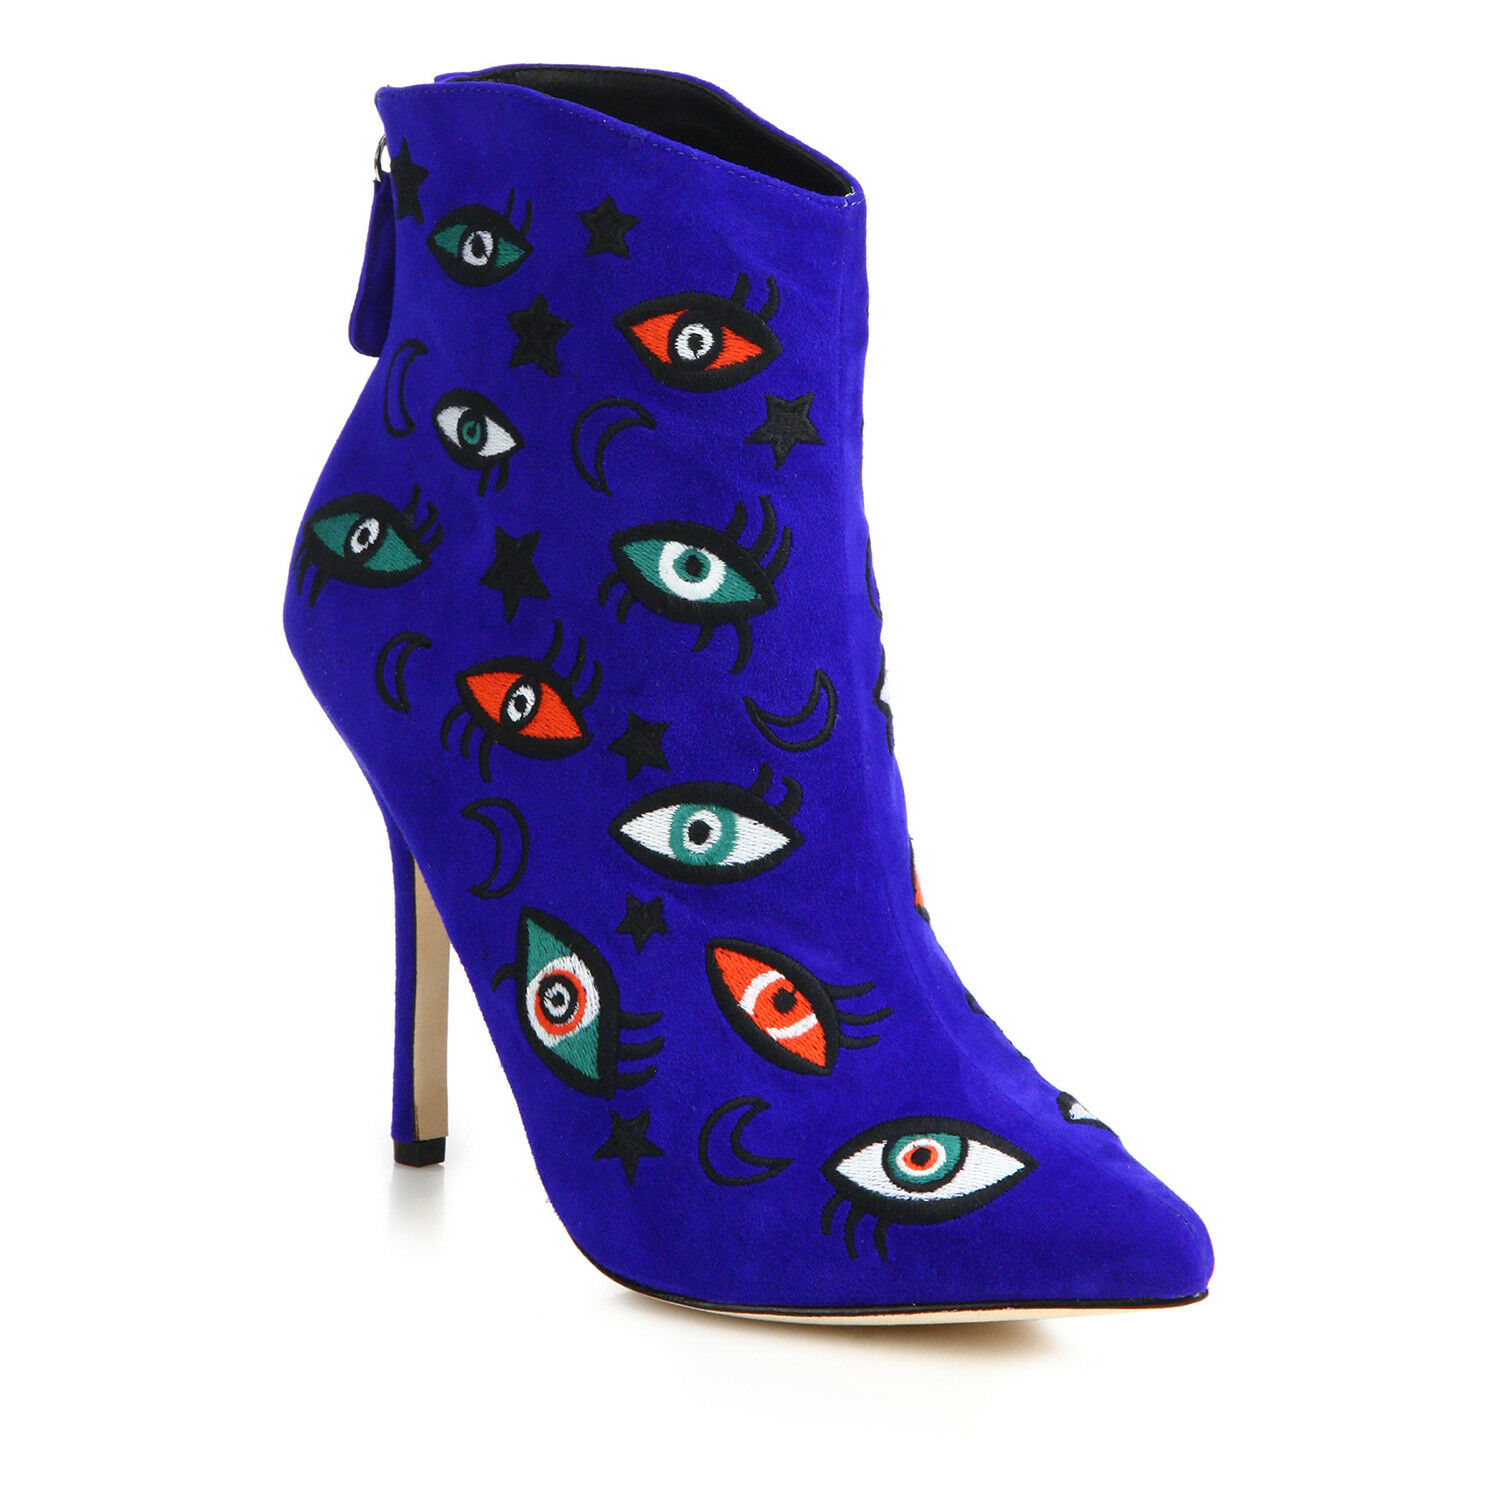 Isa Tapia Juliette Embroiderosso Eyes and Stars Suede Point-Toe avvioies - blu